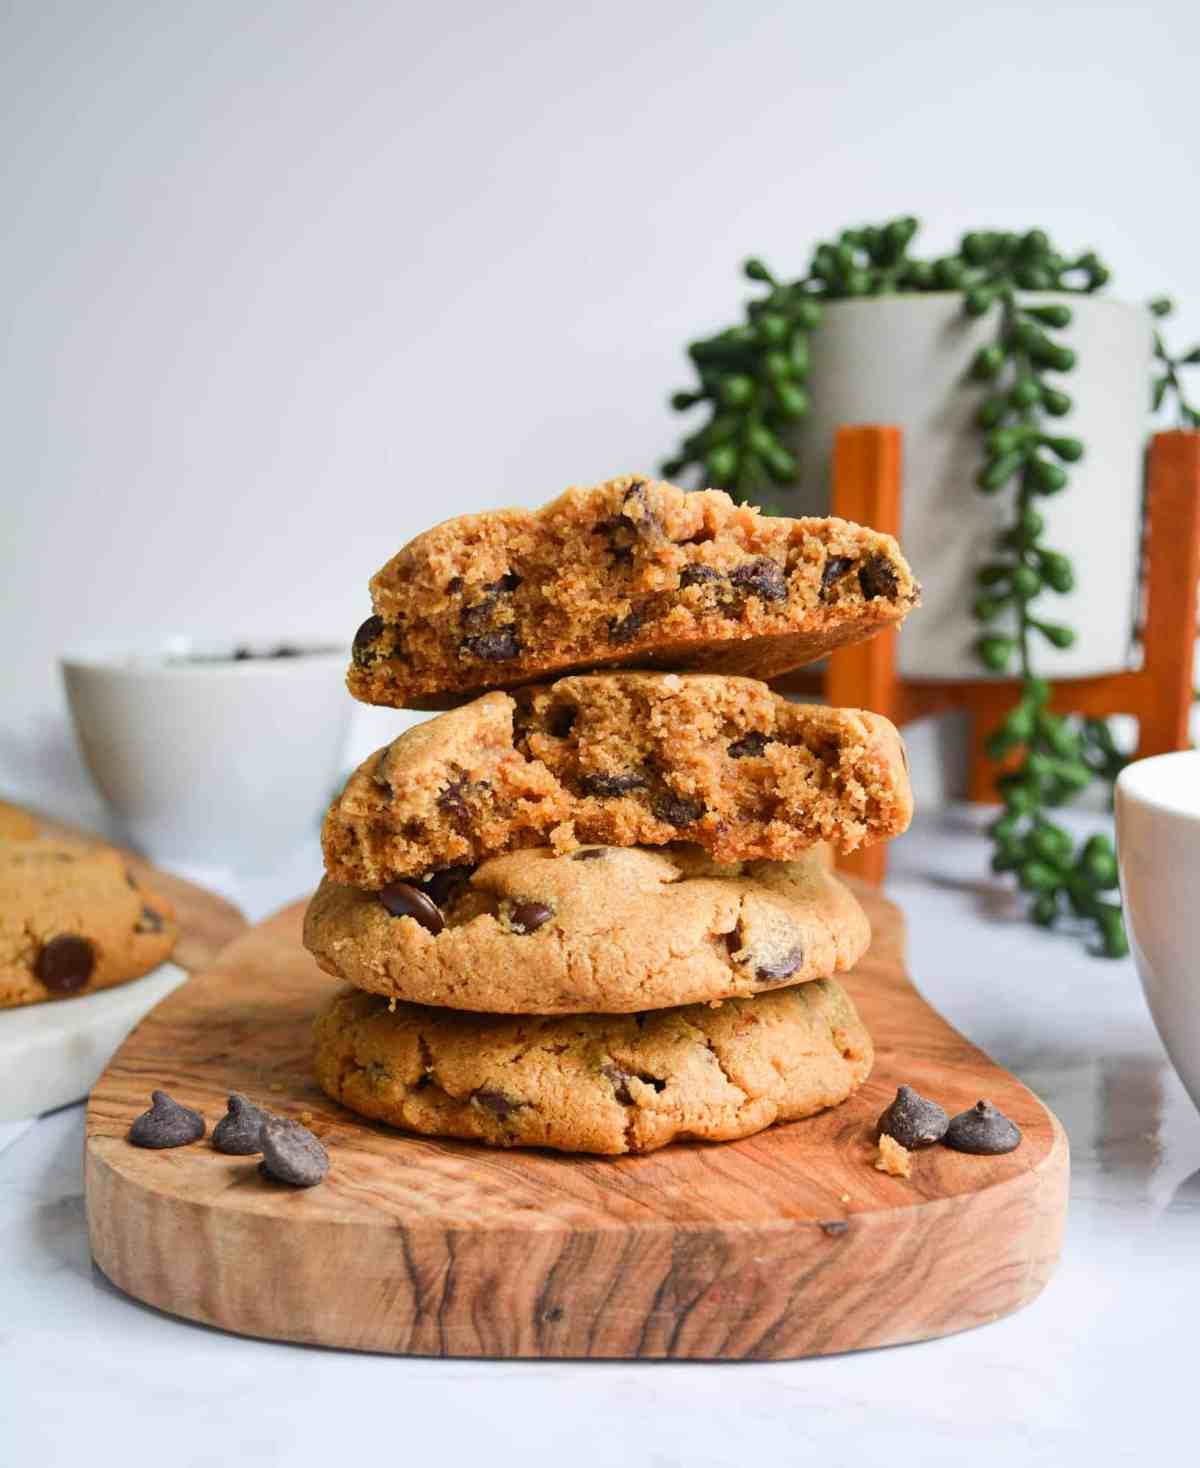 Stack of vegan peanut butter chocolate chip cookies by earthly bakers co